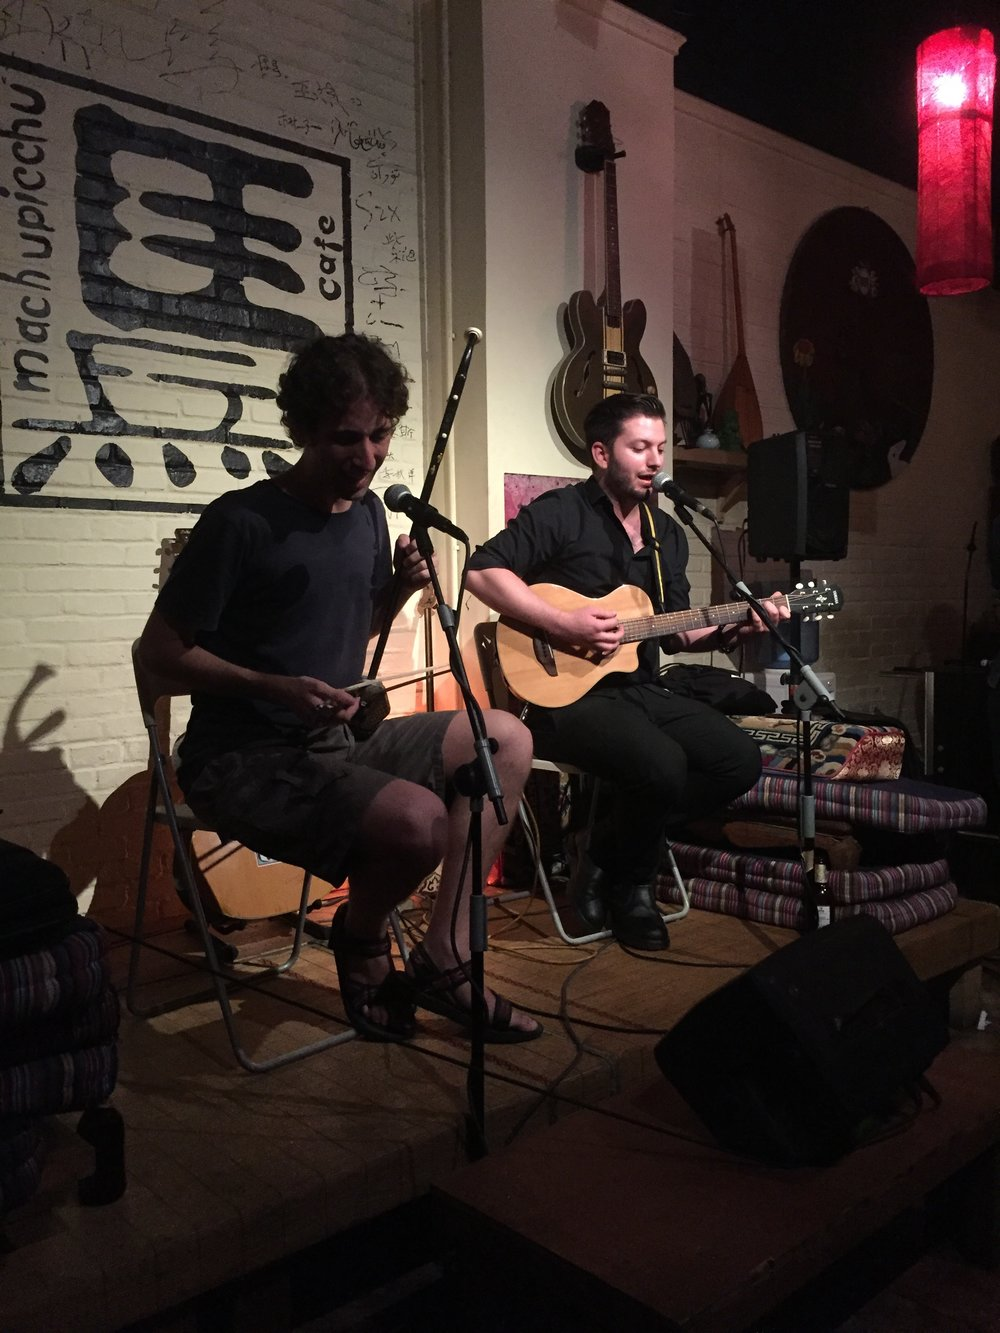 AUGUST   Moran Rozenszajn and Dror Ne'eman, Jam String Quartet, & Jah Bar Owner, Lao Li 老李